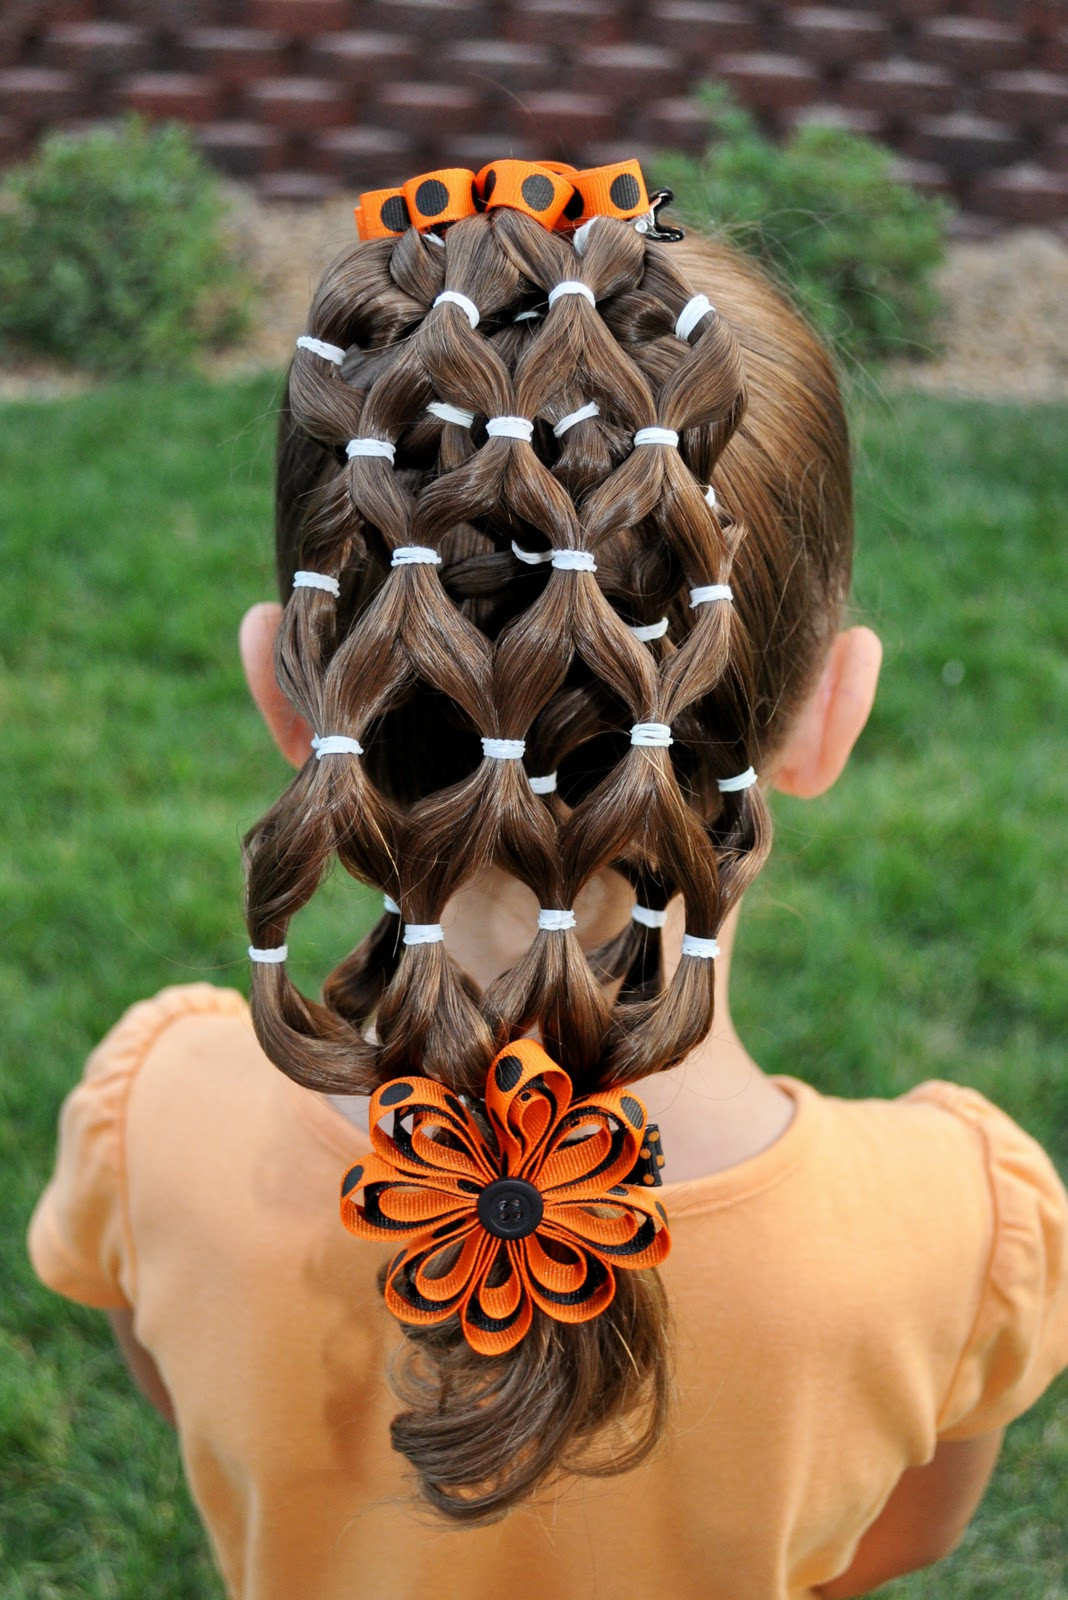 Best ideas about Halloween Hairstyles . Save or Pin Princess Piggies Halloween Hairdos The Haunted House Now.